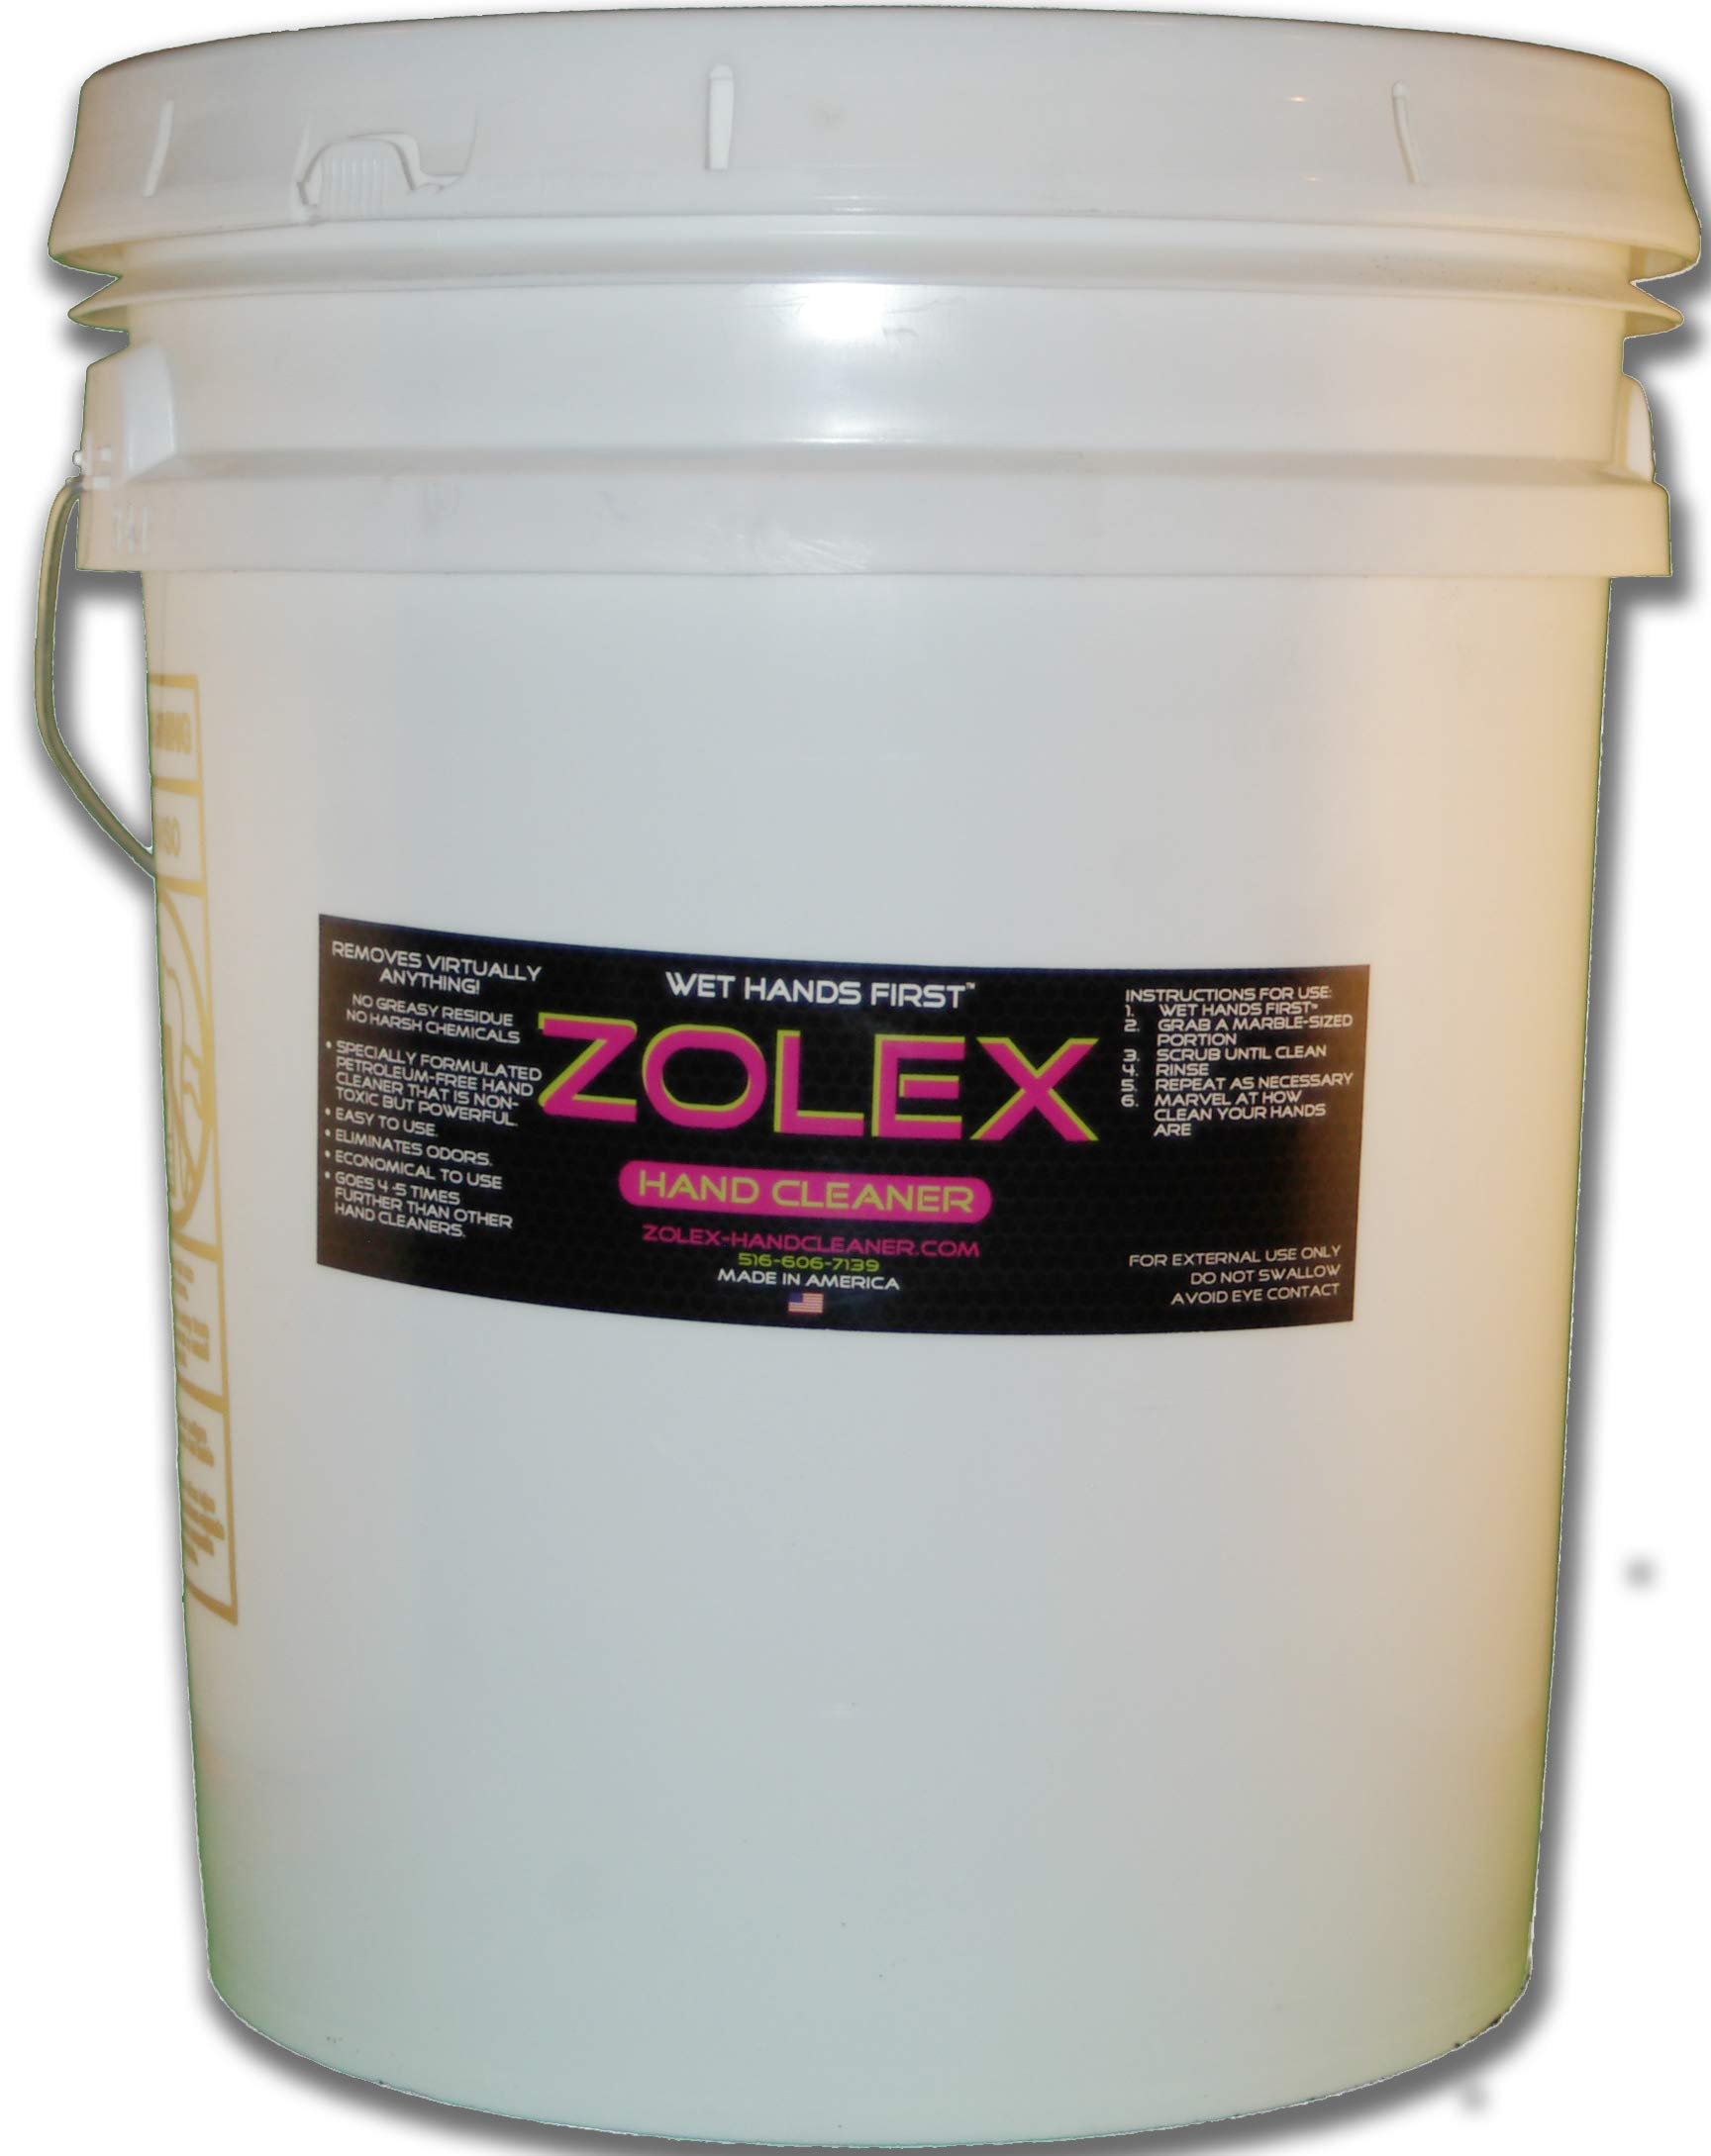 Zolex Water Activated Hand Cleaner for Working Hands| Stain Remover for Heavy Duty Workers | Grease Remover for Auto Mechanics - Non-Toxic Petroleum Free | Commercial-Sized Pail (12 lb) by Zolex (Image #1)